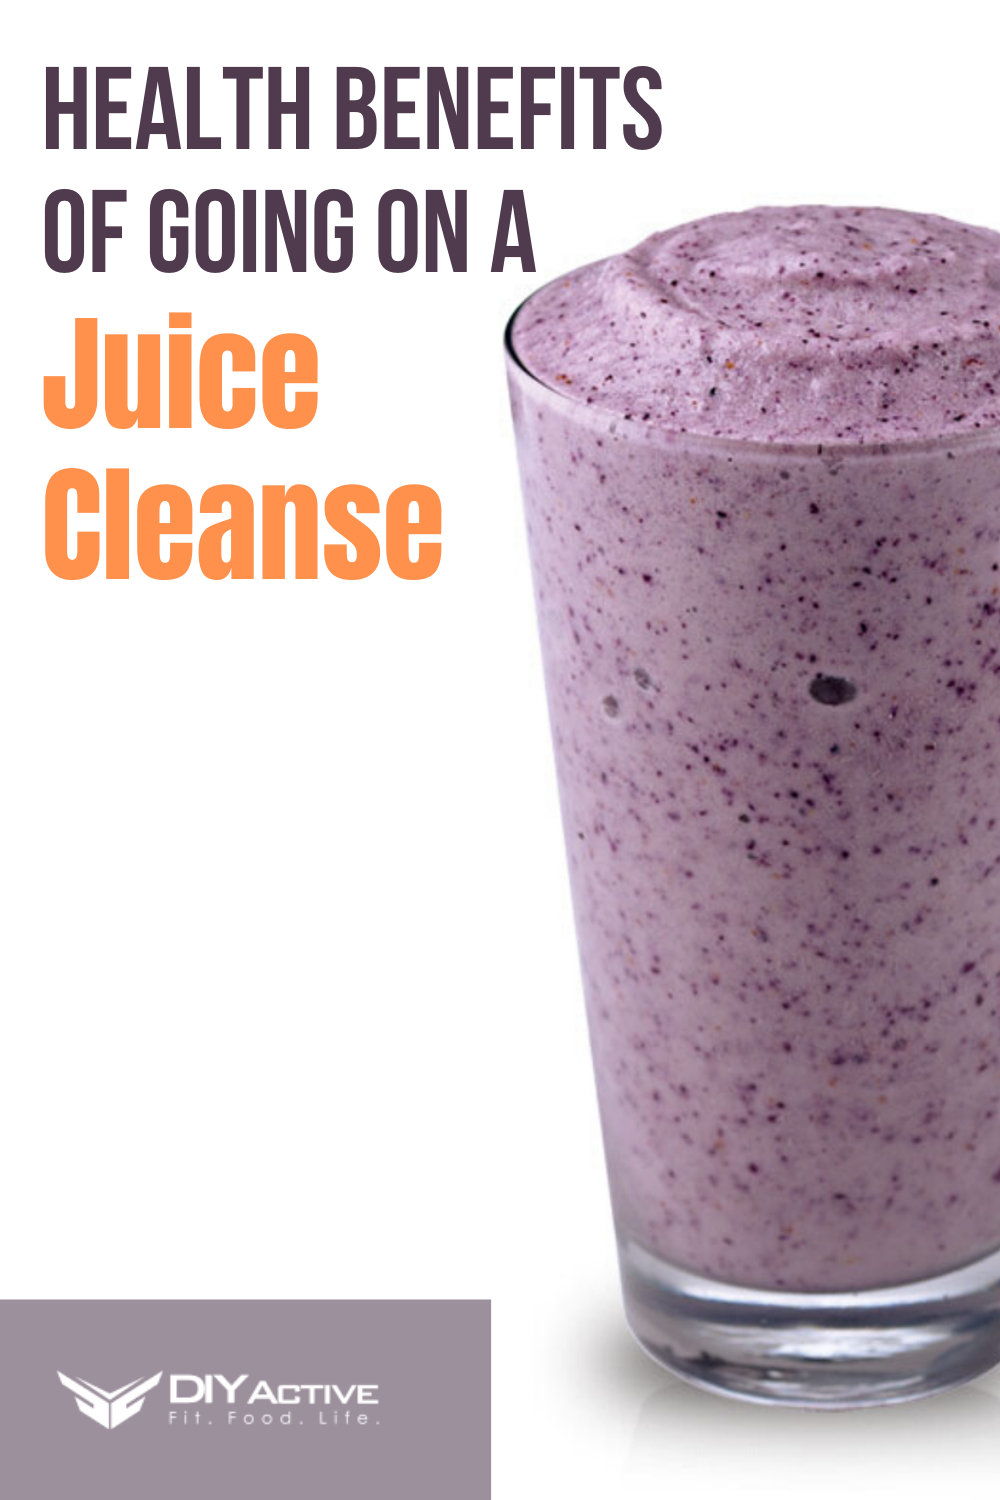 Weight Management: Health Benefits of Going On a Juice Cleanse